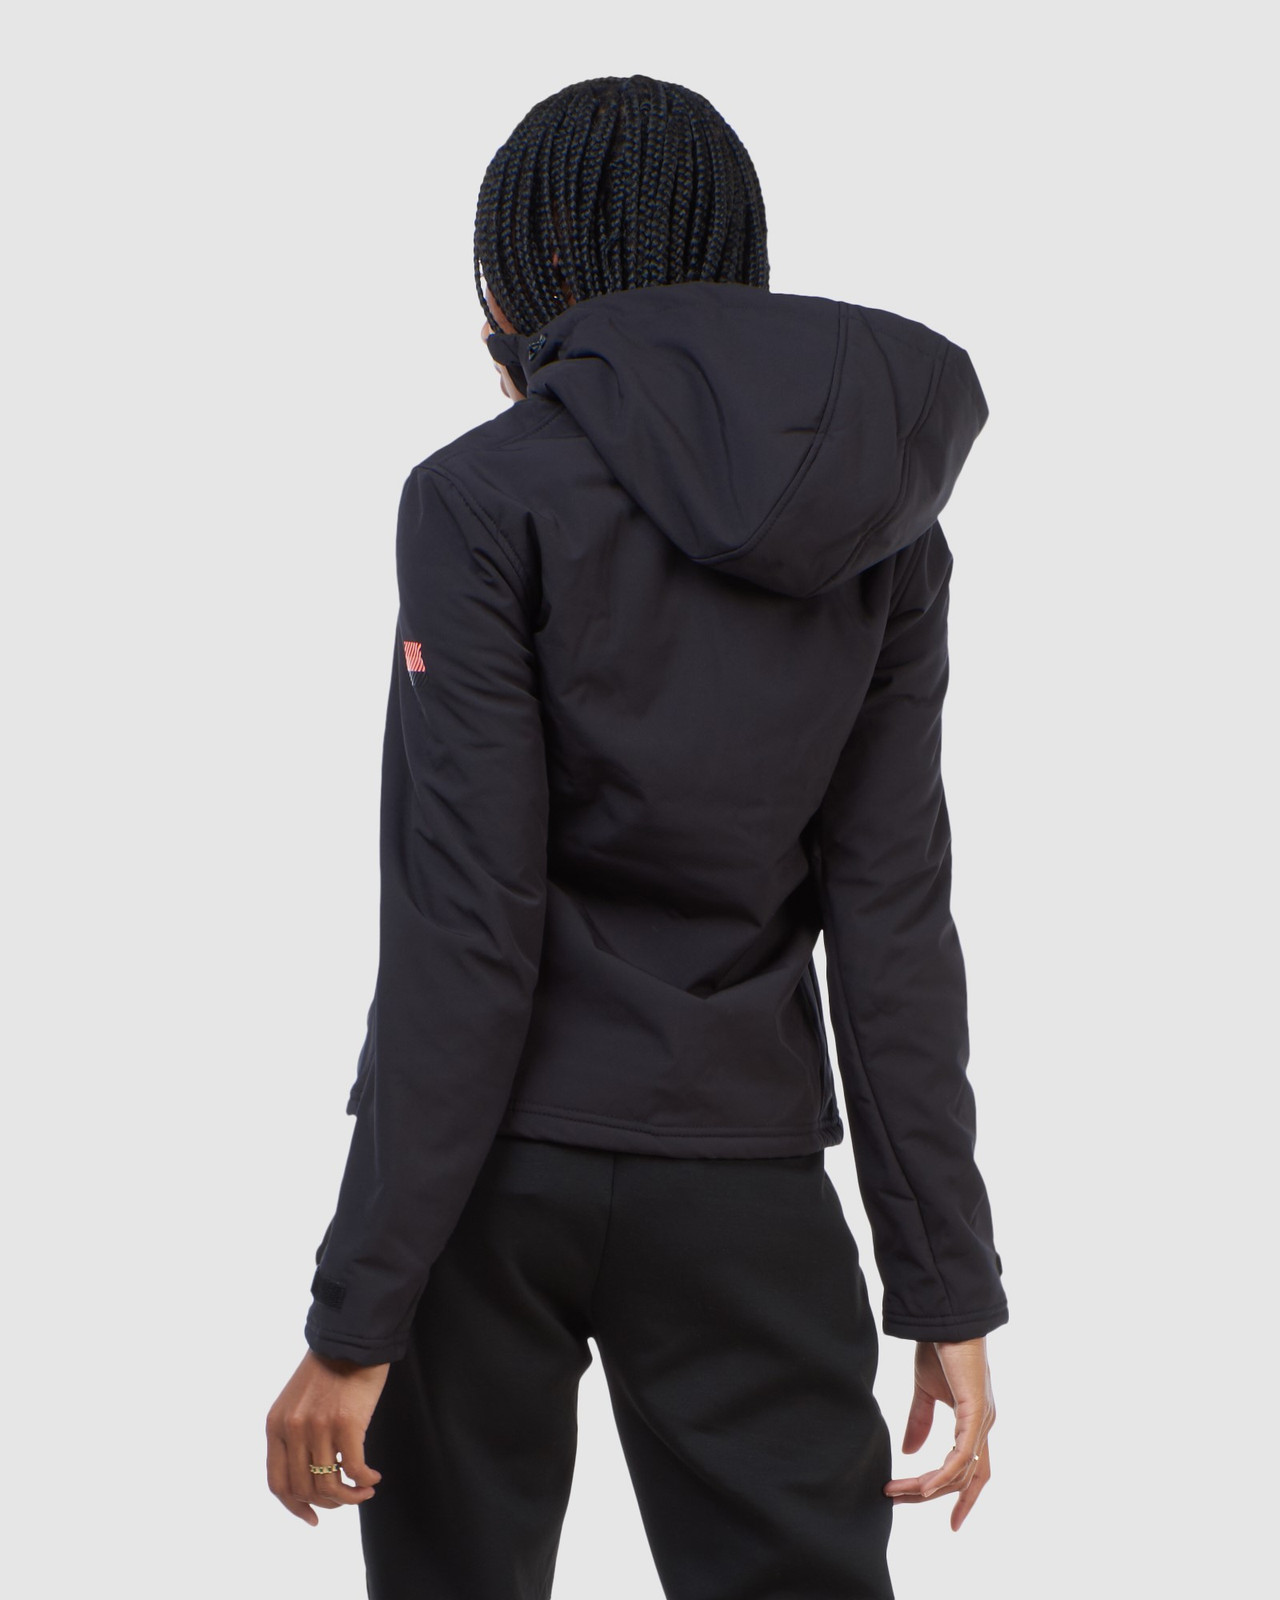 Superdry Womens ARCTIC SOFT SHELL JACKET Black Windcheaters 5